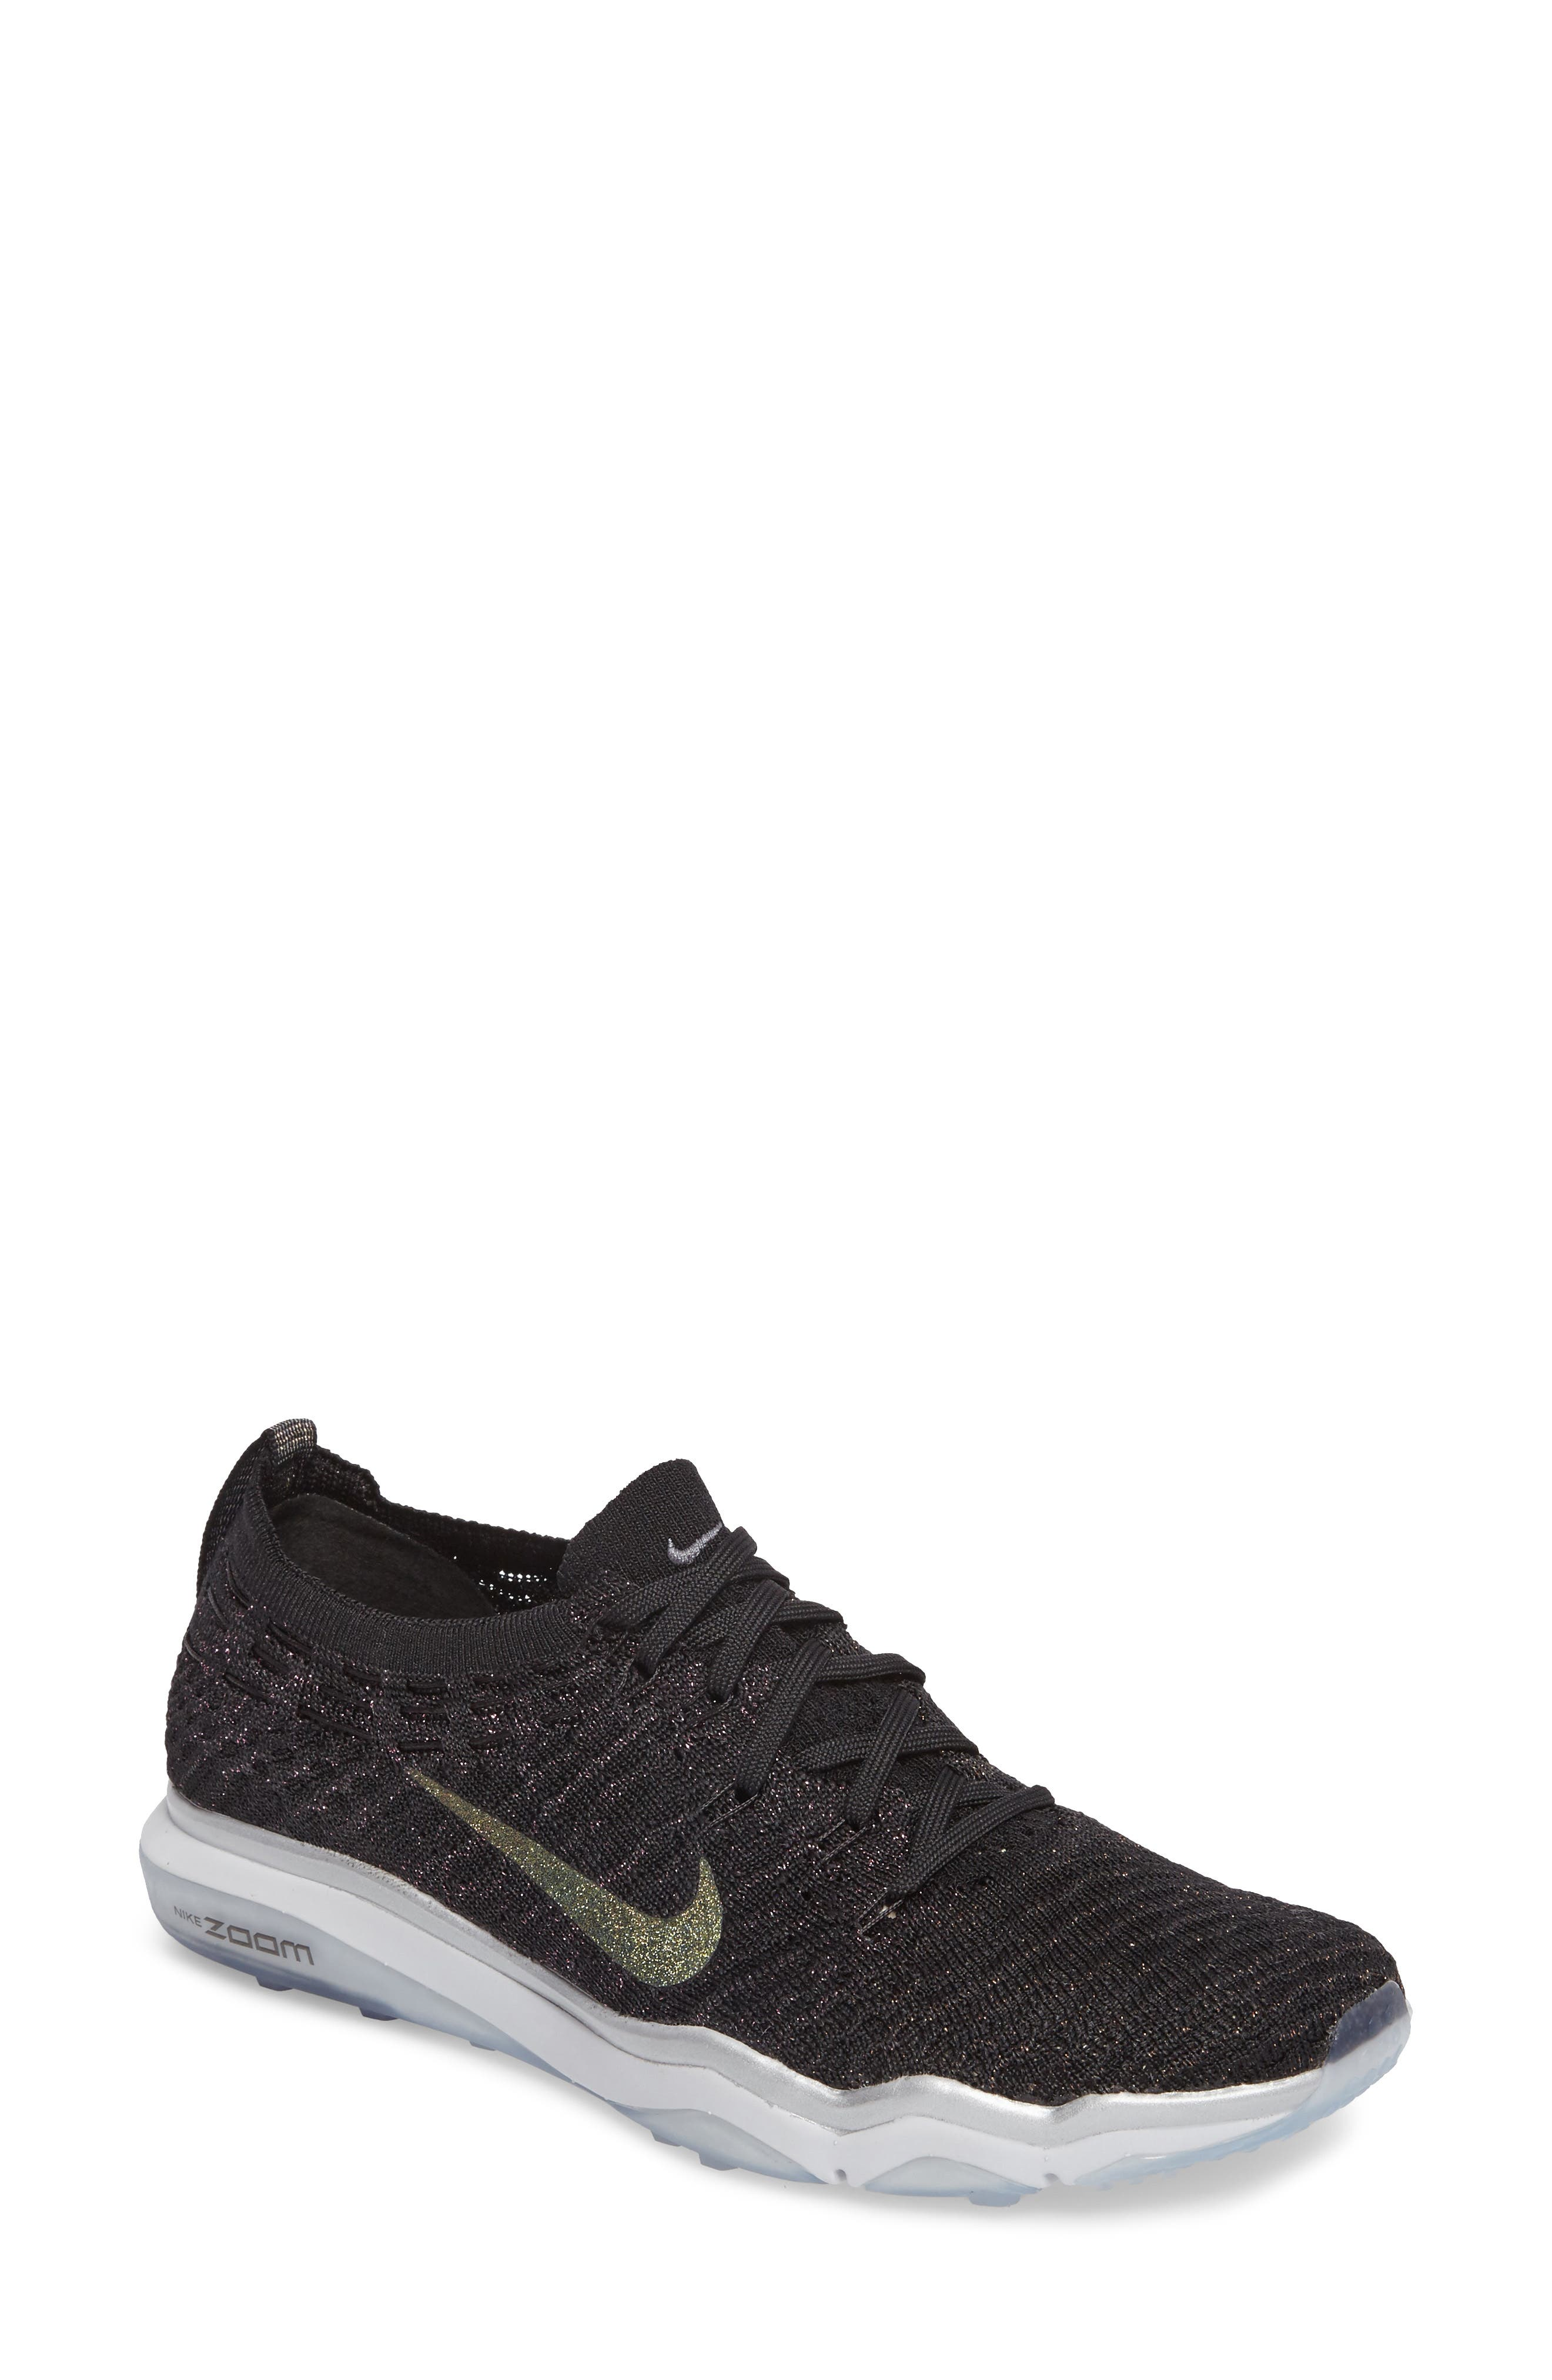 Air Zoom Fearless Flyknit Metallic Training Shoe,                         Main,                         color,